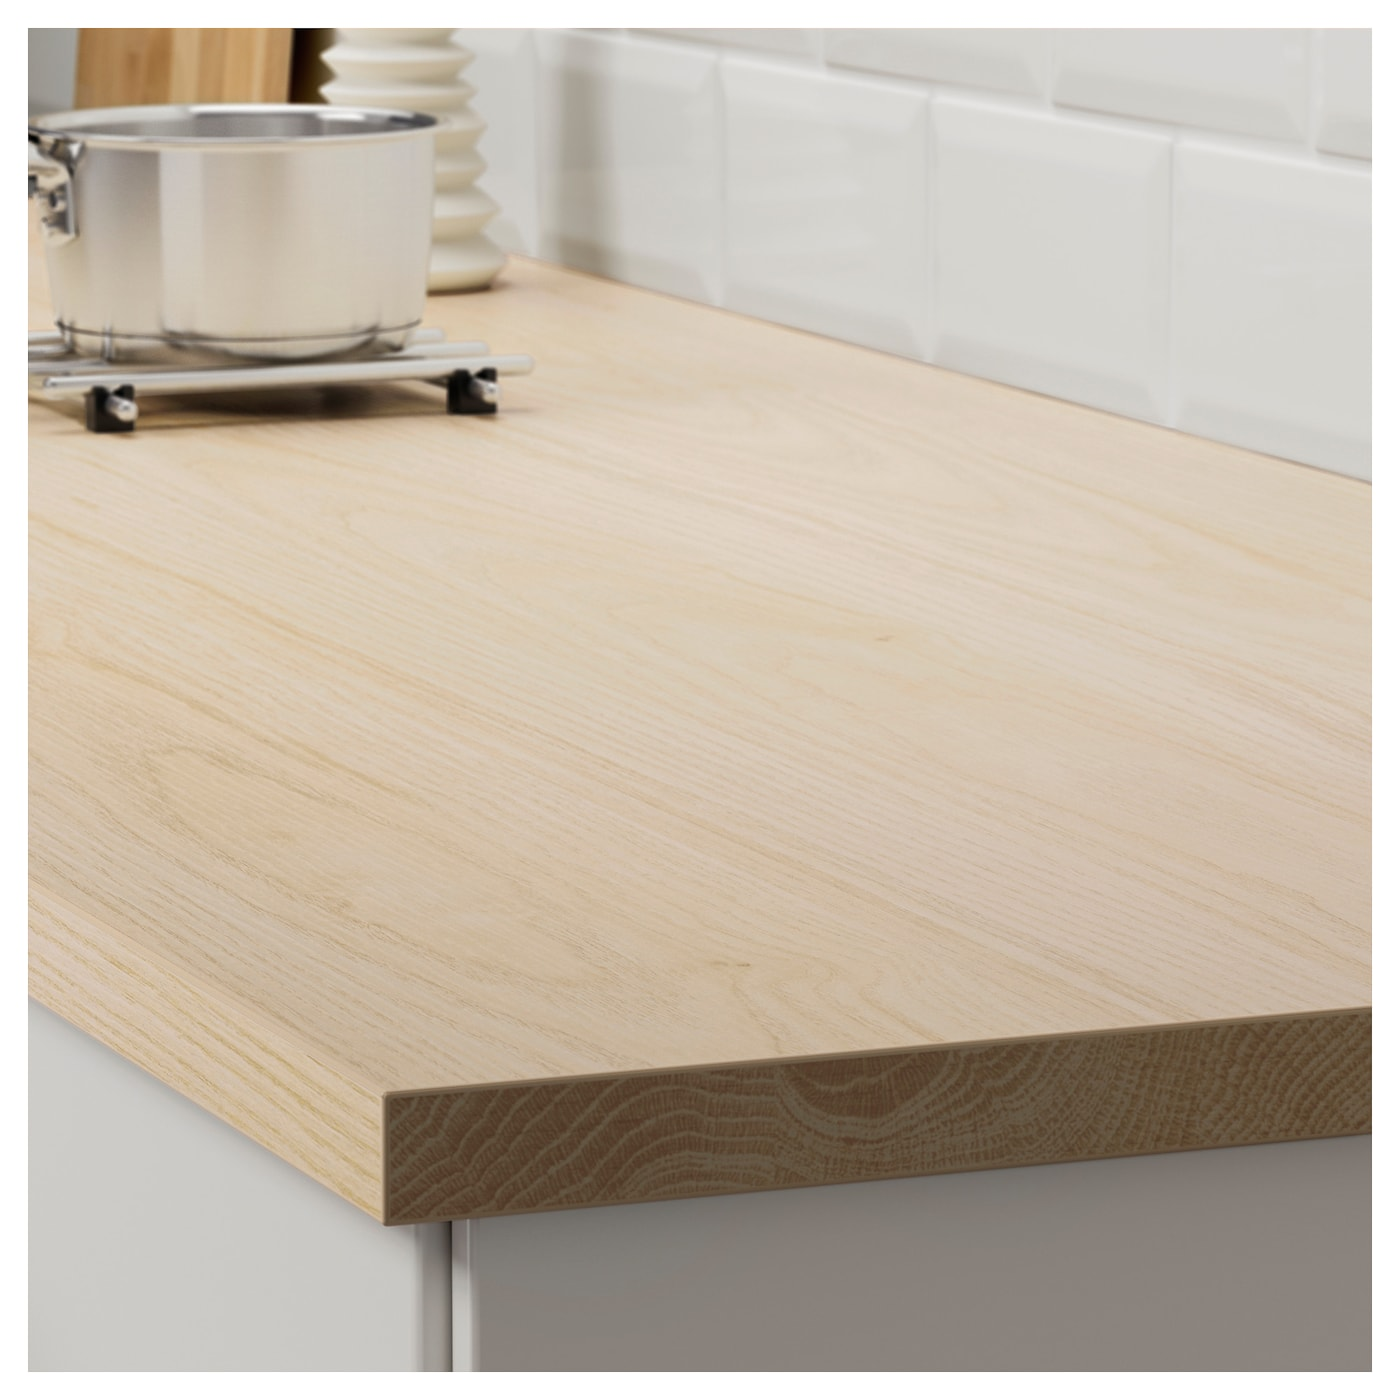 IKEA EKBACKEN custom made worktop 25 year guarantee. Read about the terms in the guarantee brochure.